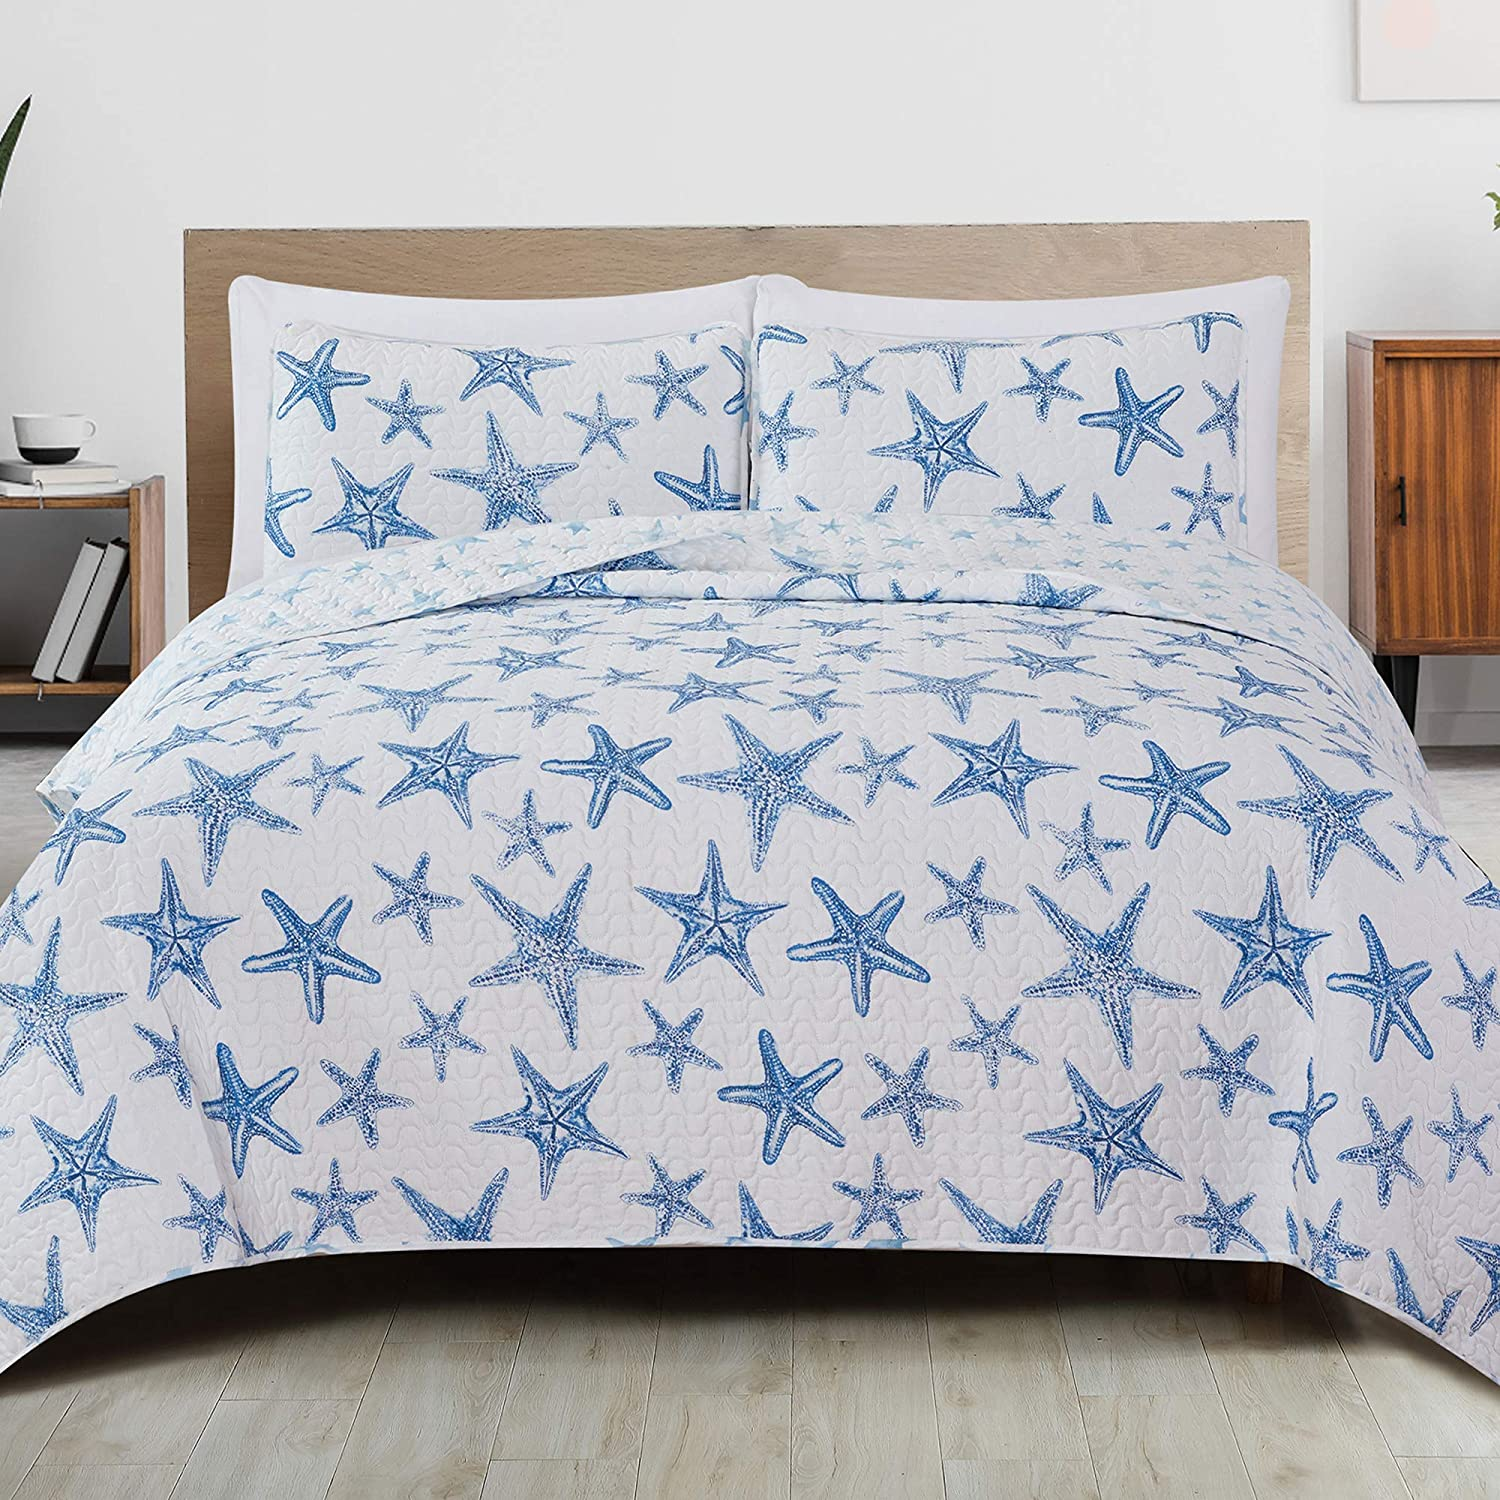 Amazon Com Great Bay Home 3 Piece Reversible Quilt Set With Shams All Season Coastal Beach Theme Bedspread Coverlet Trinidad Collection Full Queen Blue Home Kitchen